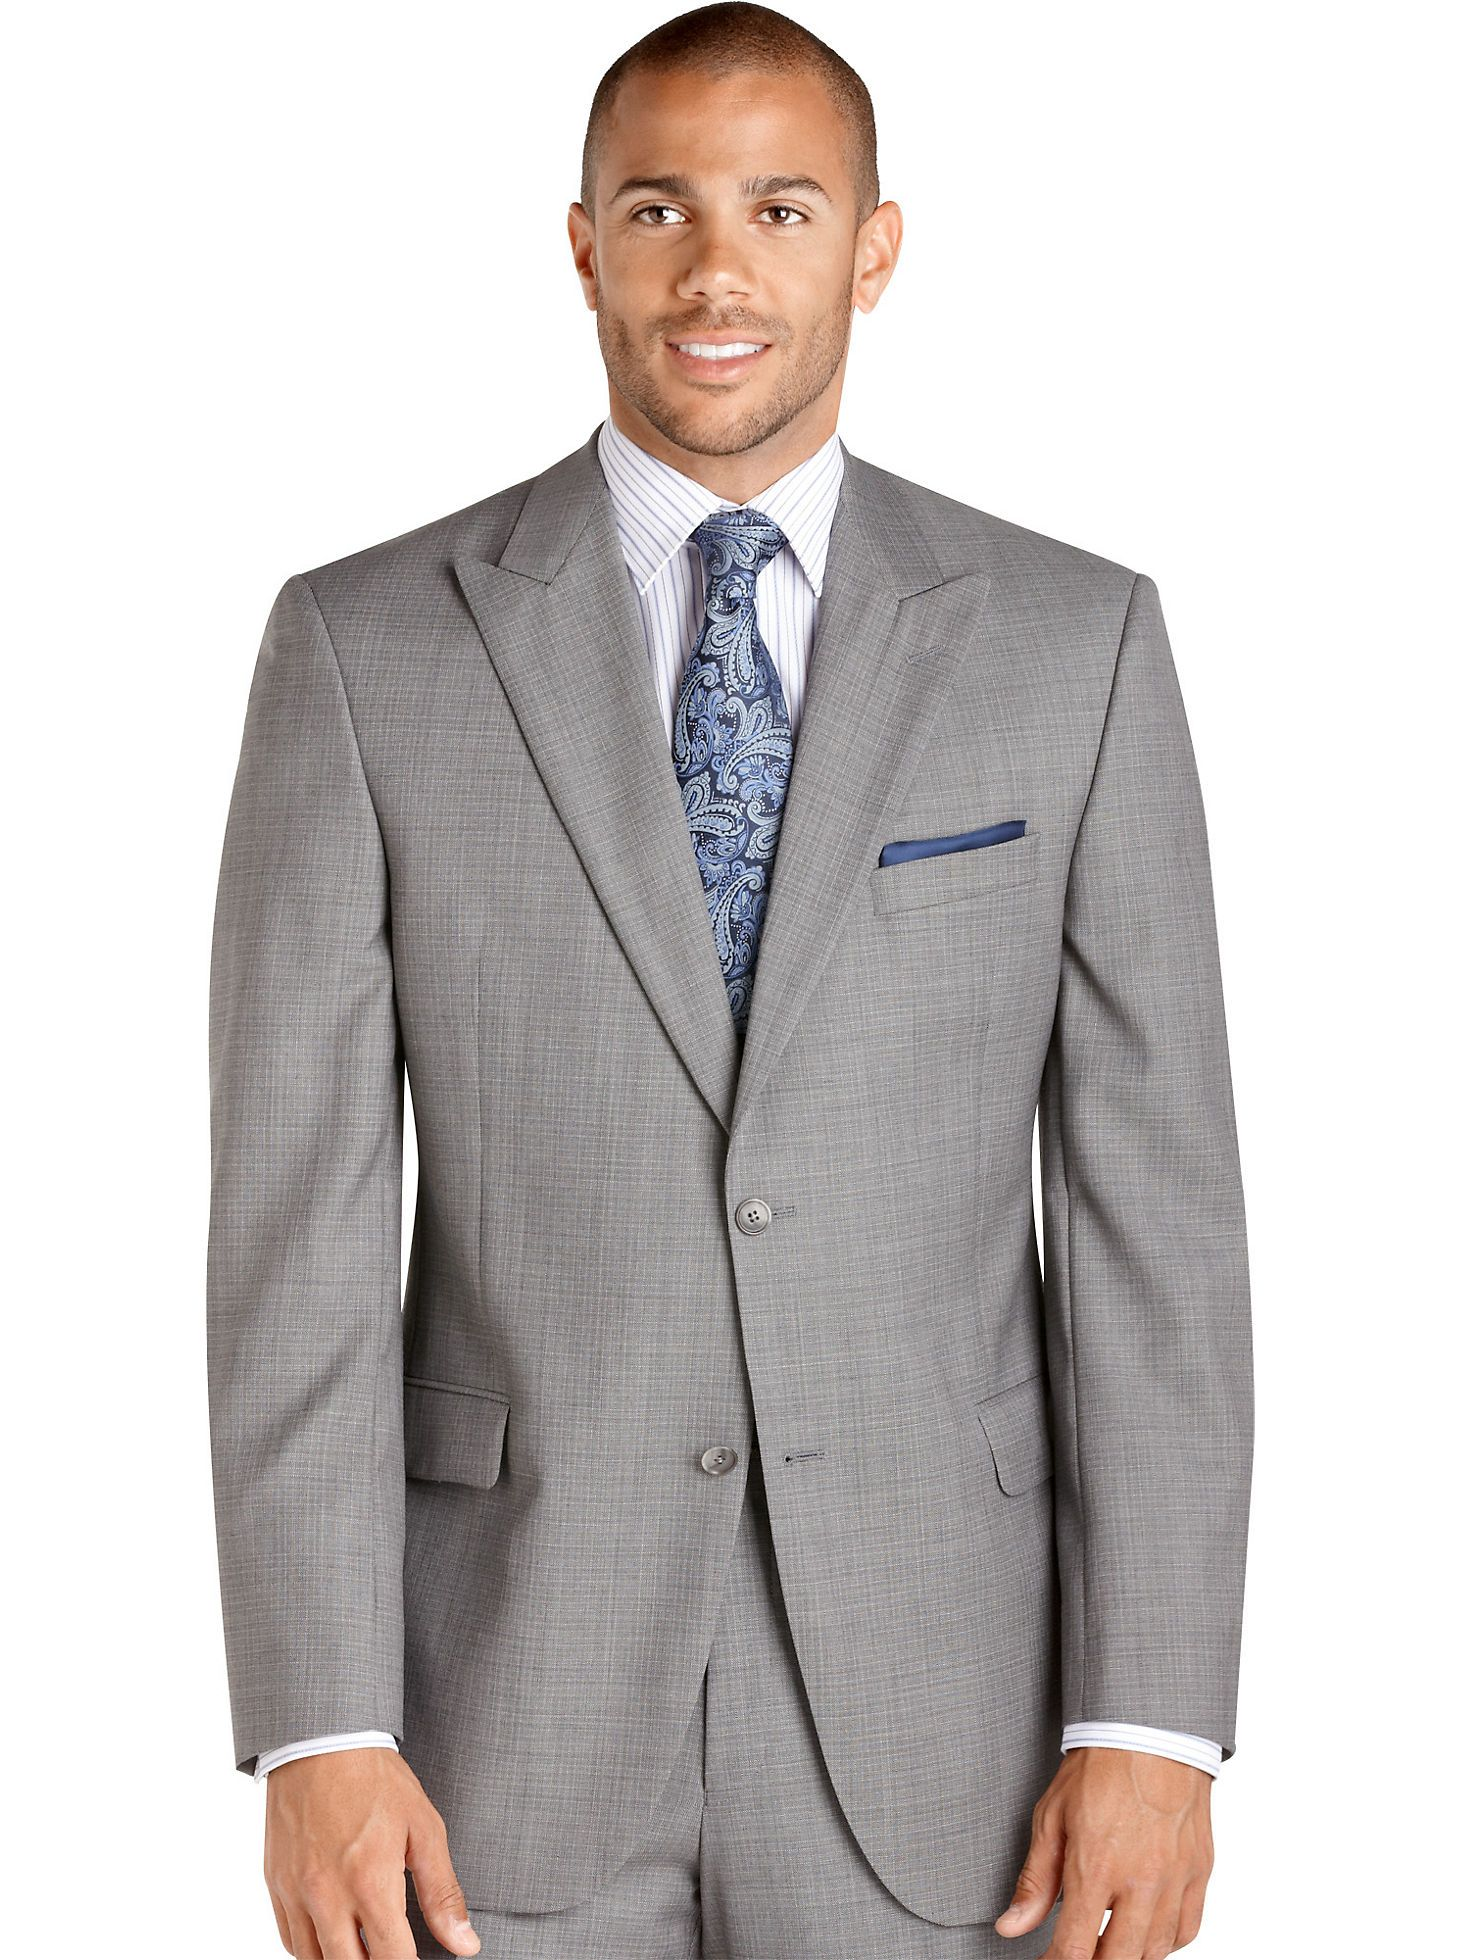 Suits Jack Victor Select Label Gray Check Suit Men's